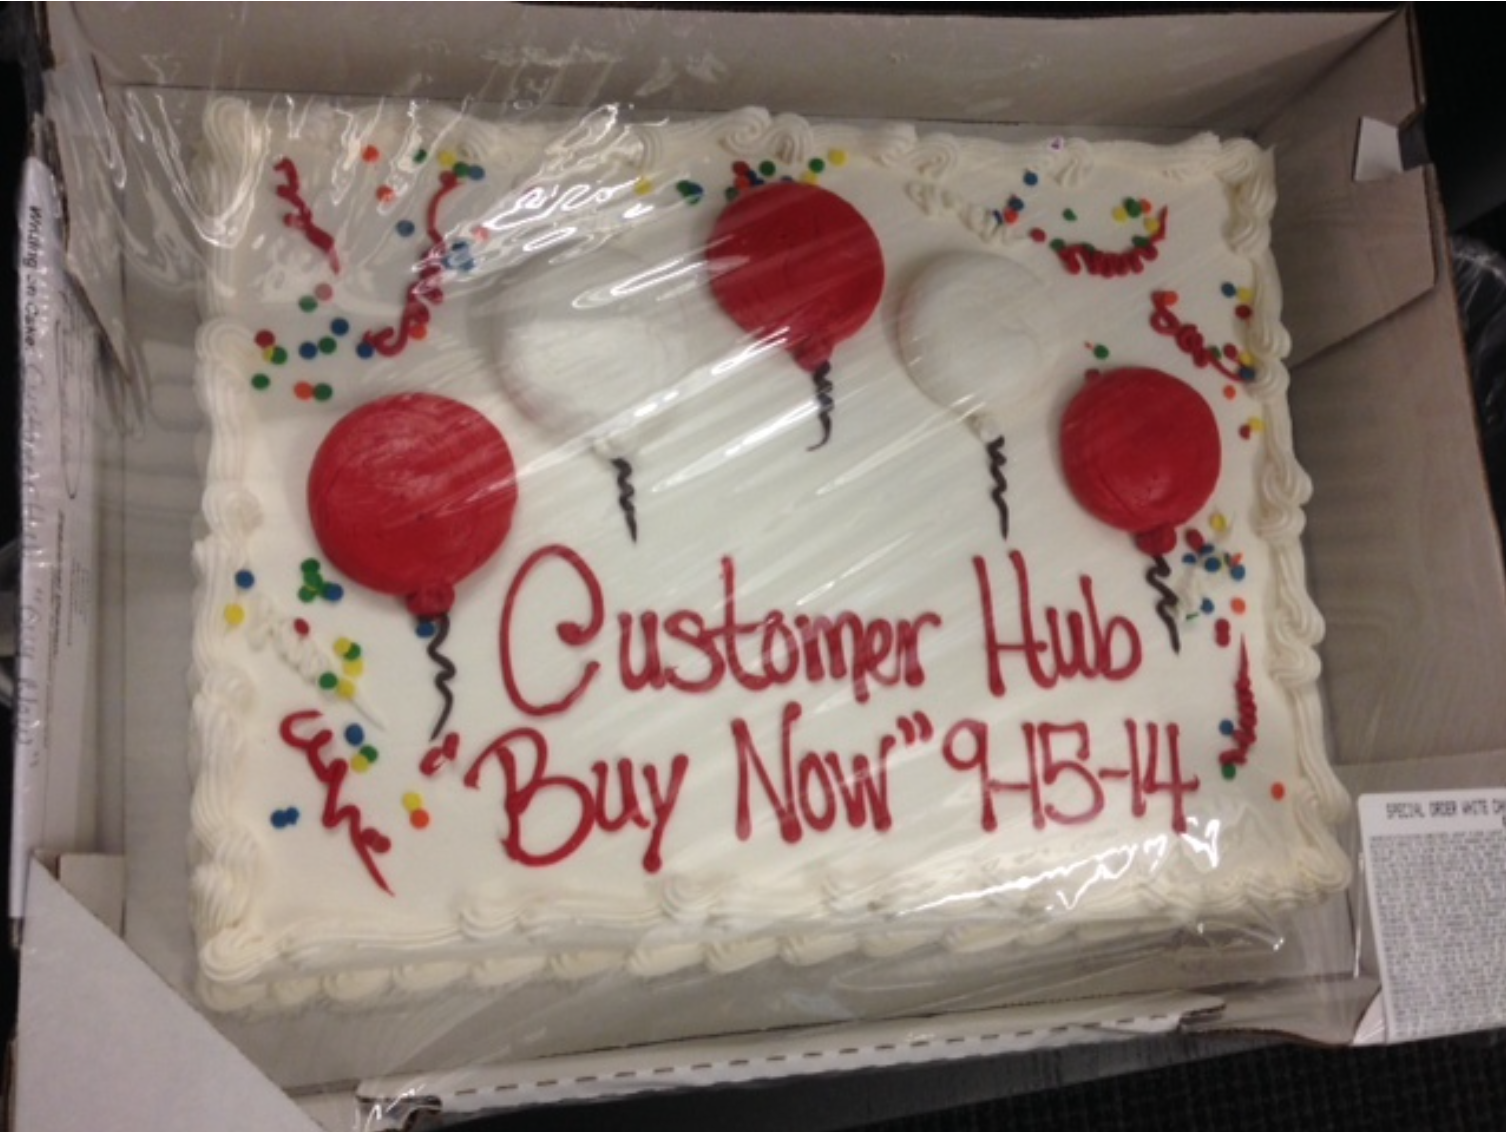 justin topliff customerhub cake